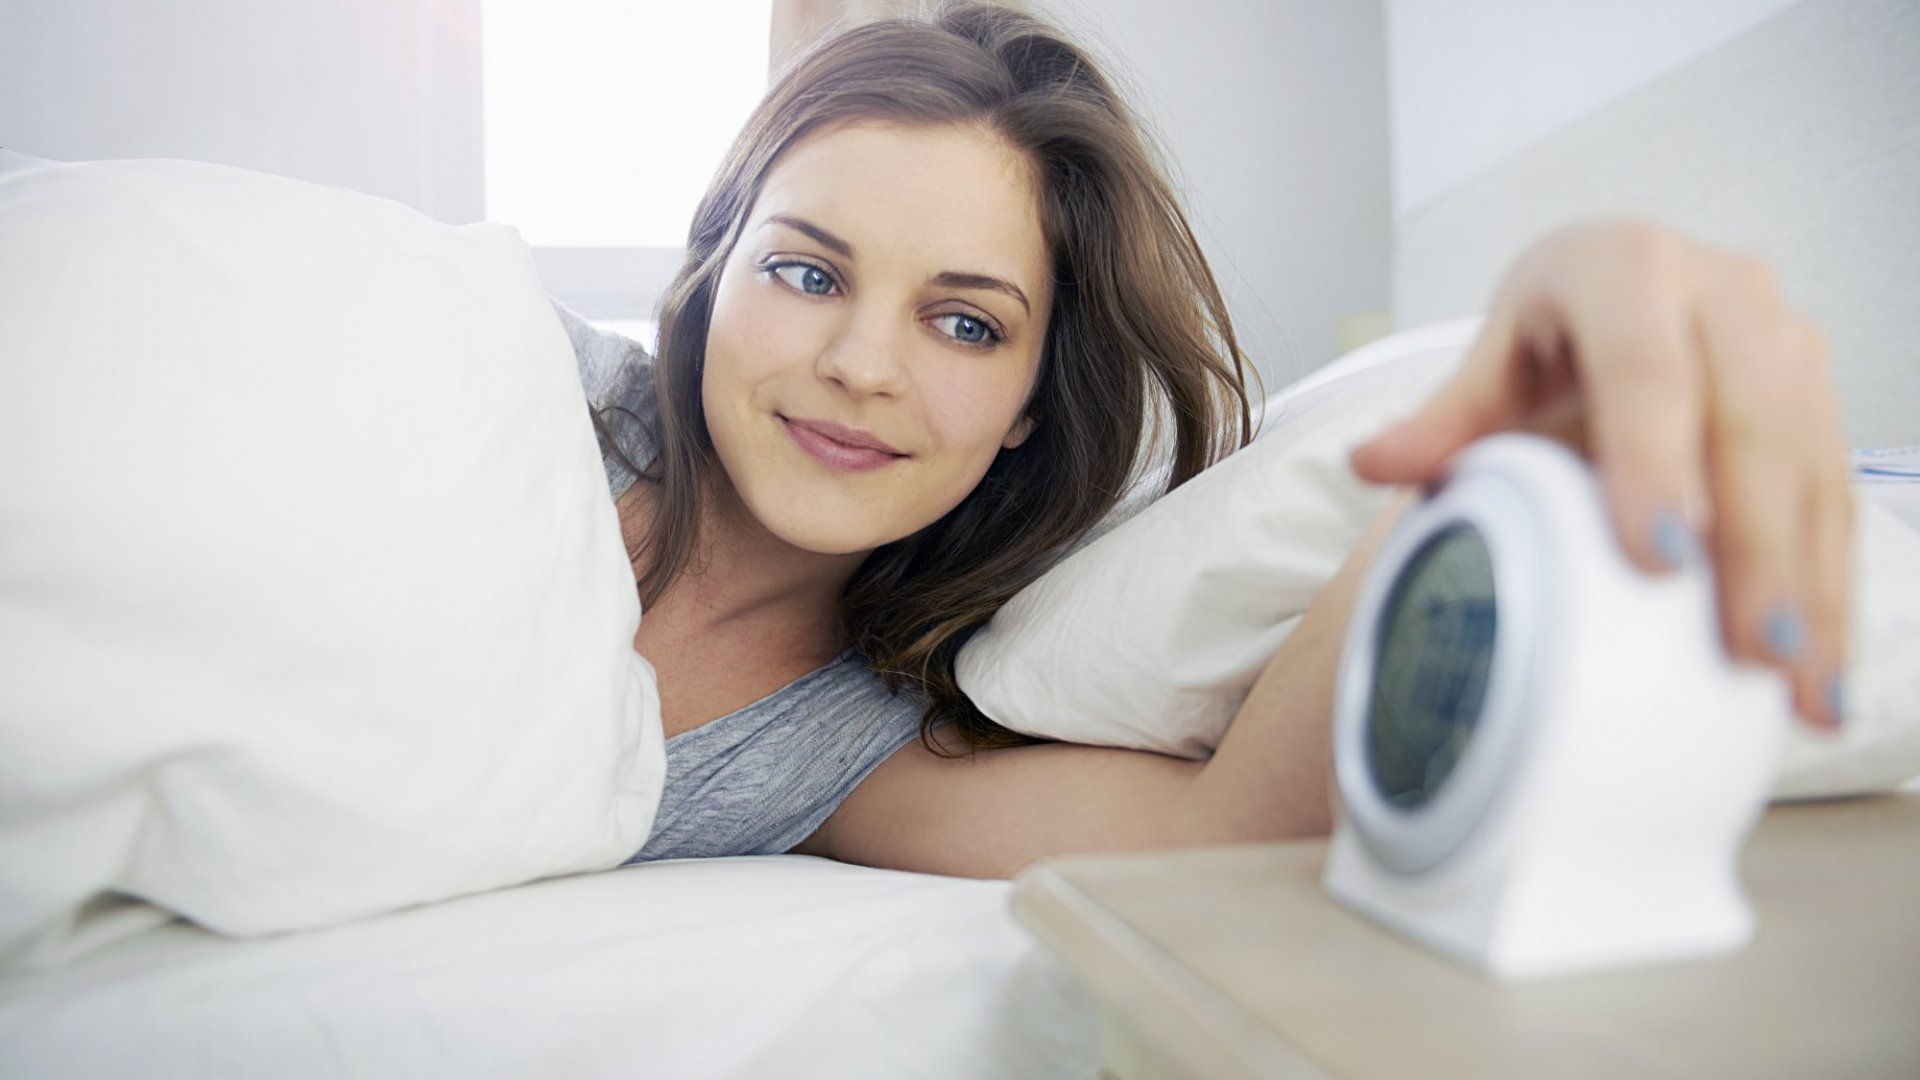 Not a Morning Person? These 5 Tips Can Turn You Into One